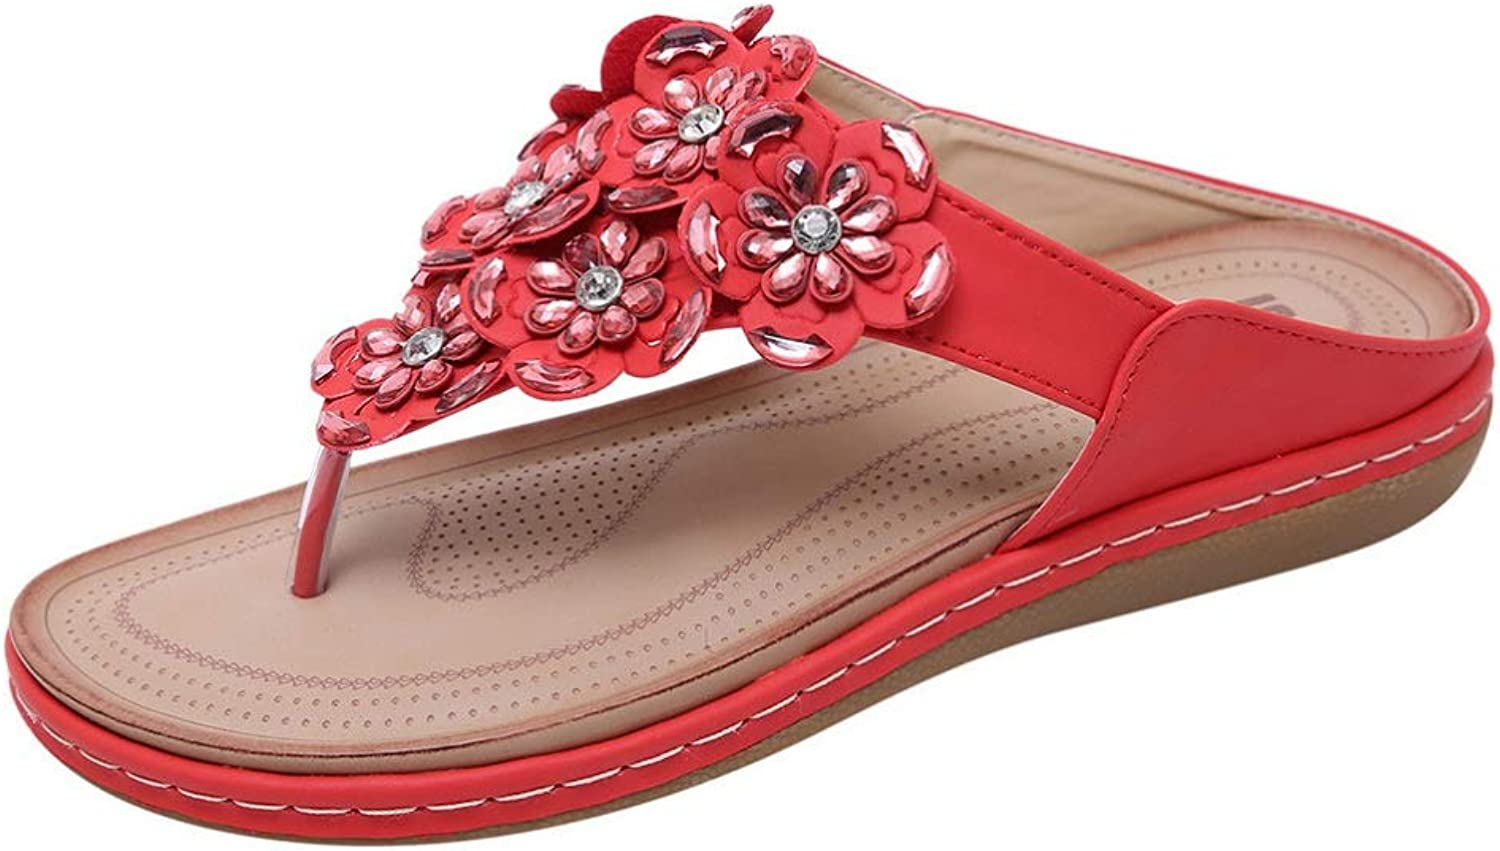 T-JULY Women's Flat Sandal Shallow Mouth Open Toe Crystal Flower with Buckle Beach Slippers Ladies Summer Roman Style shoes